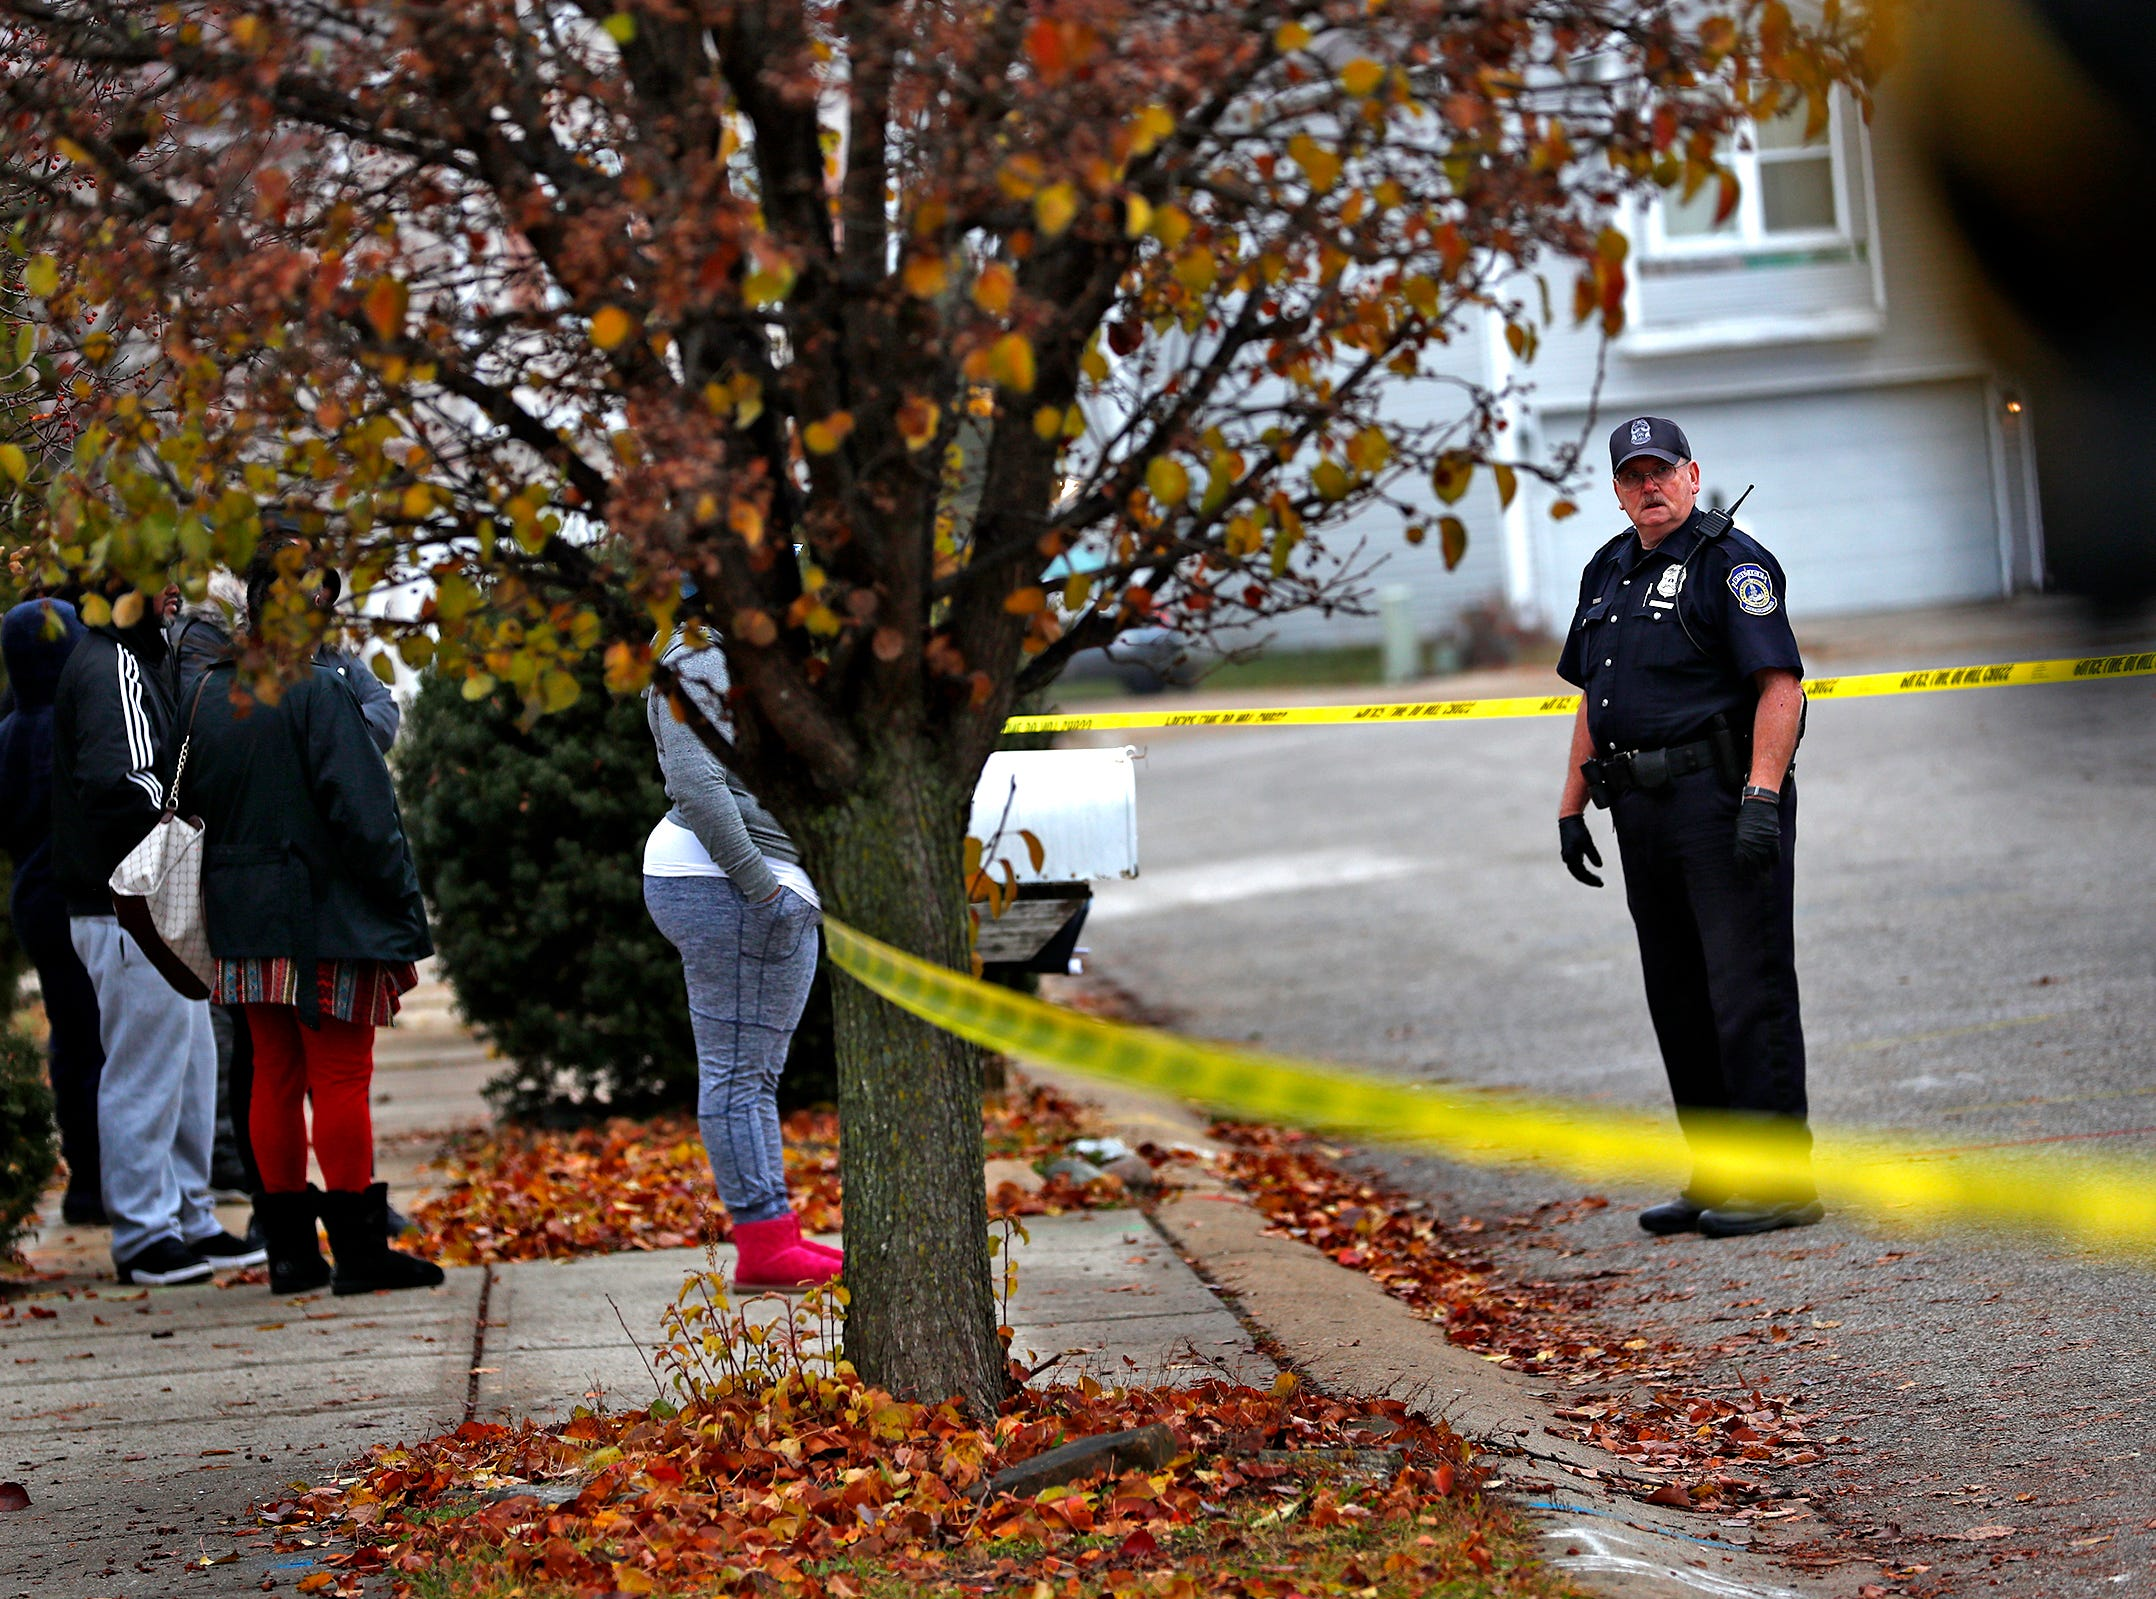 An IMPD officer talks to people watching as the investigation continues at the scene of a homicide in the 3800 block of Amaranth Court, Friday, Nov. 30, 2018.